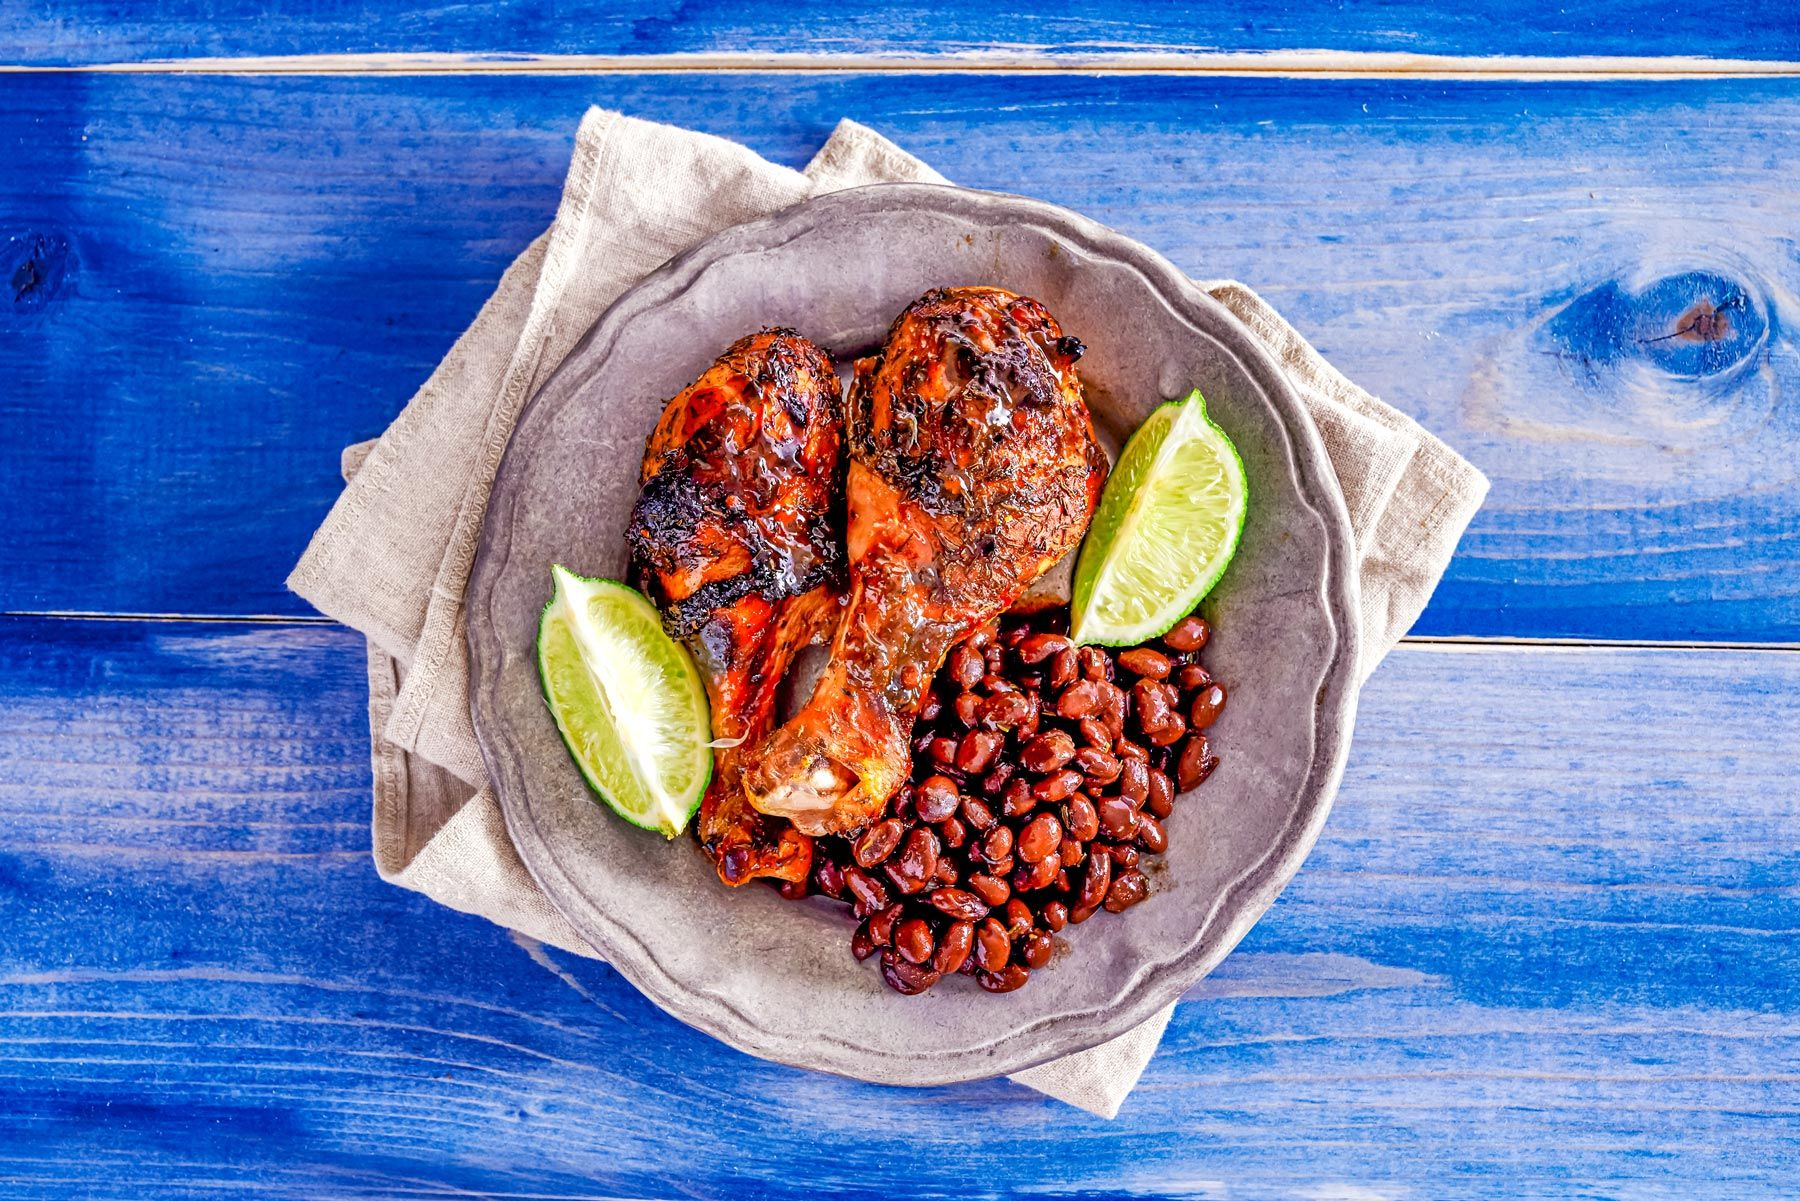 Grilled jamaican jerk chicken